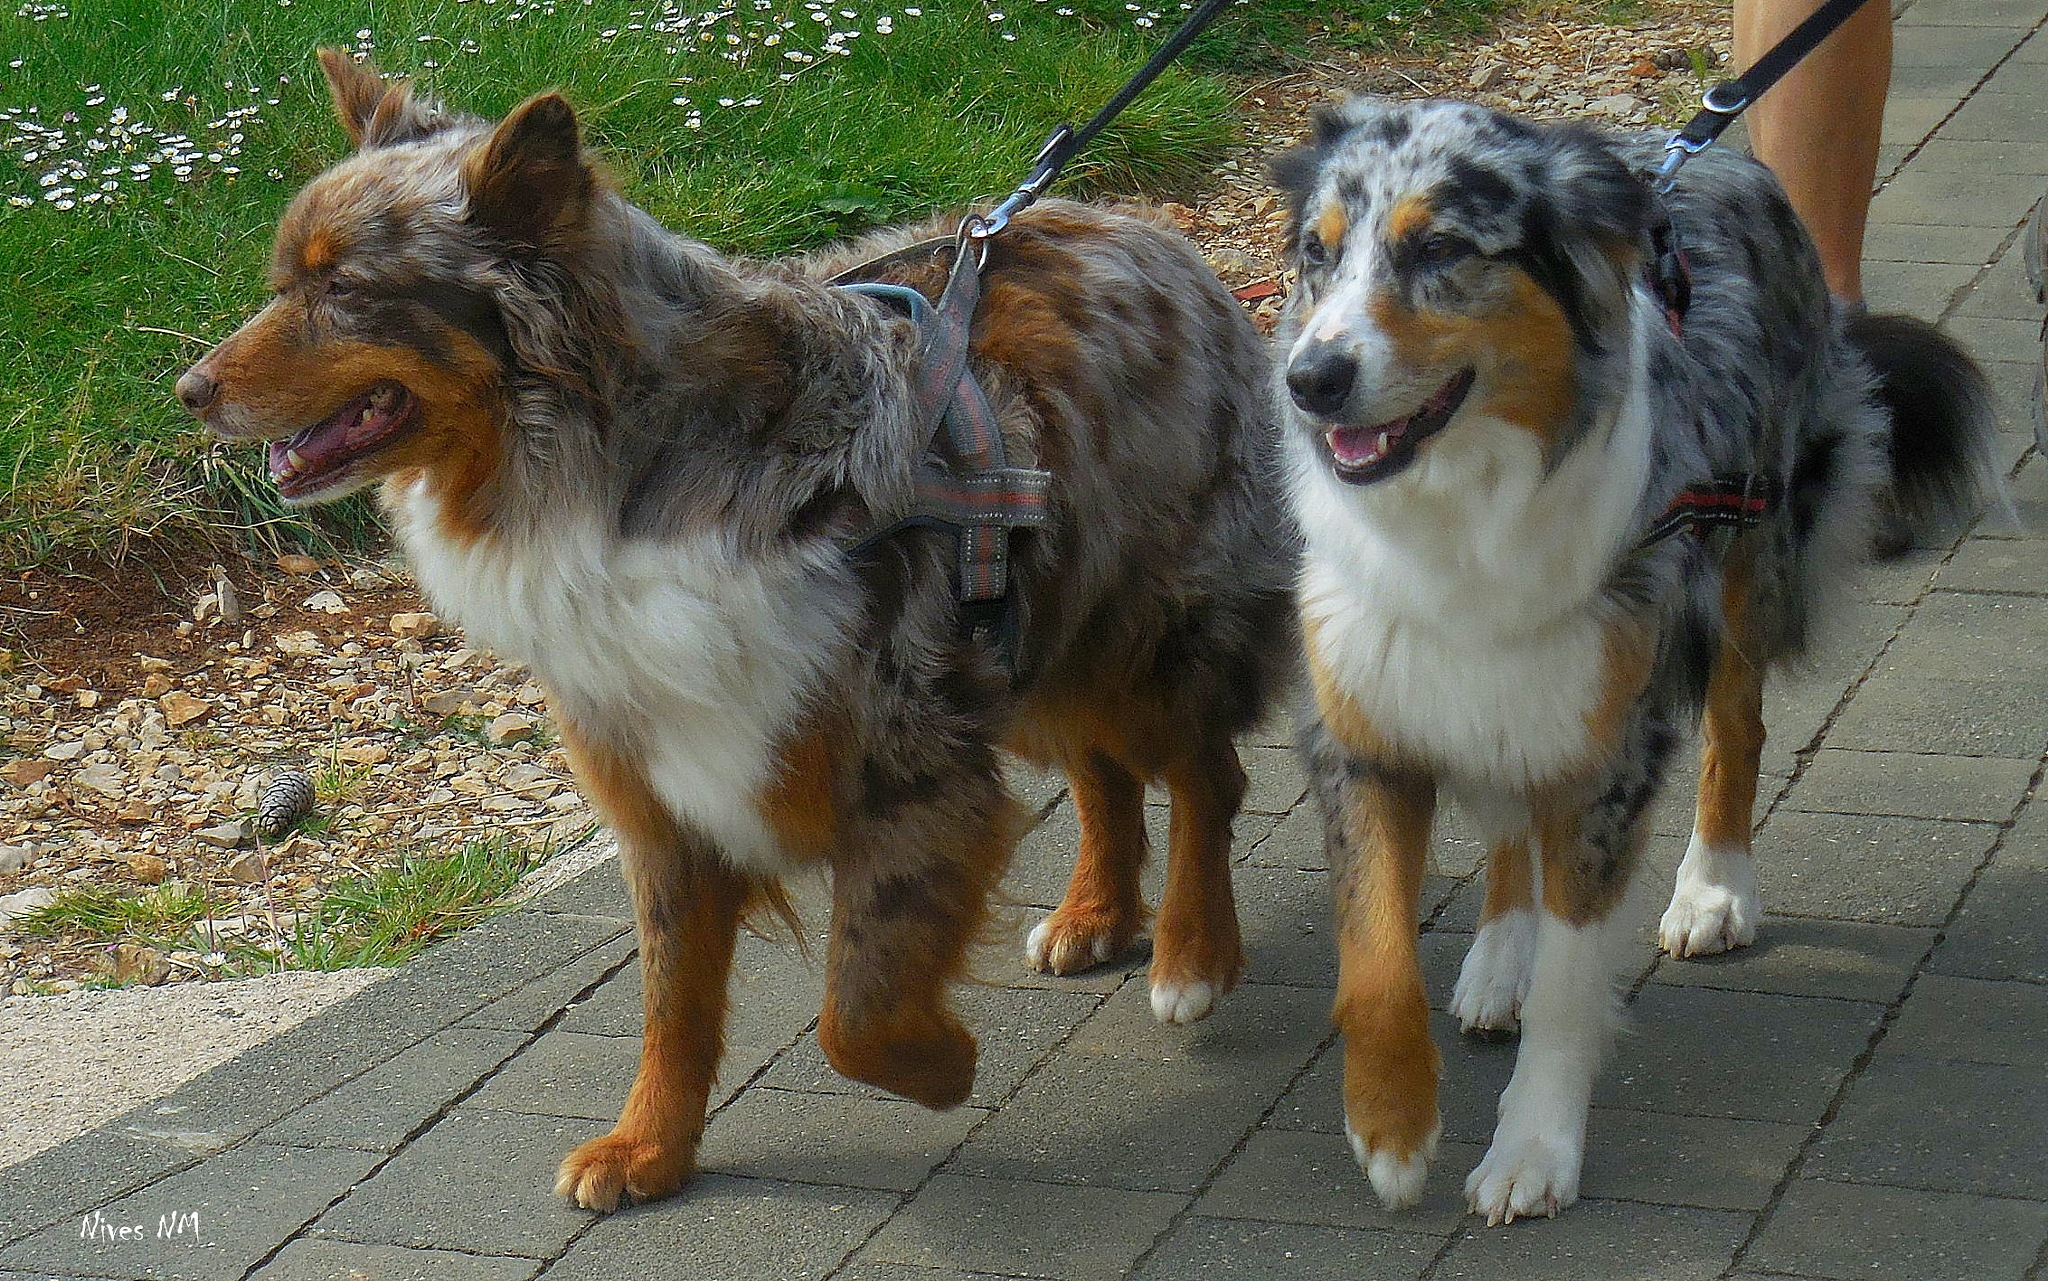 beautiful dogs by nives.n.marusic